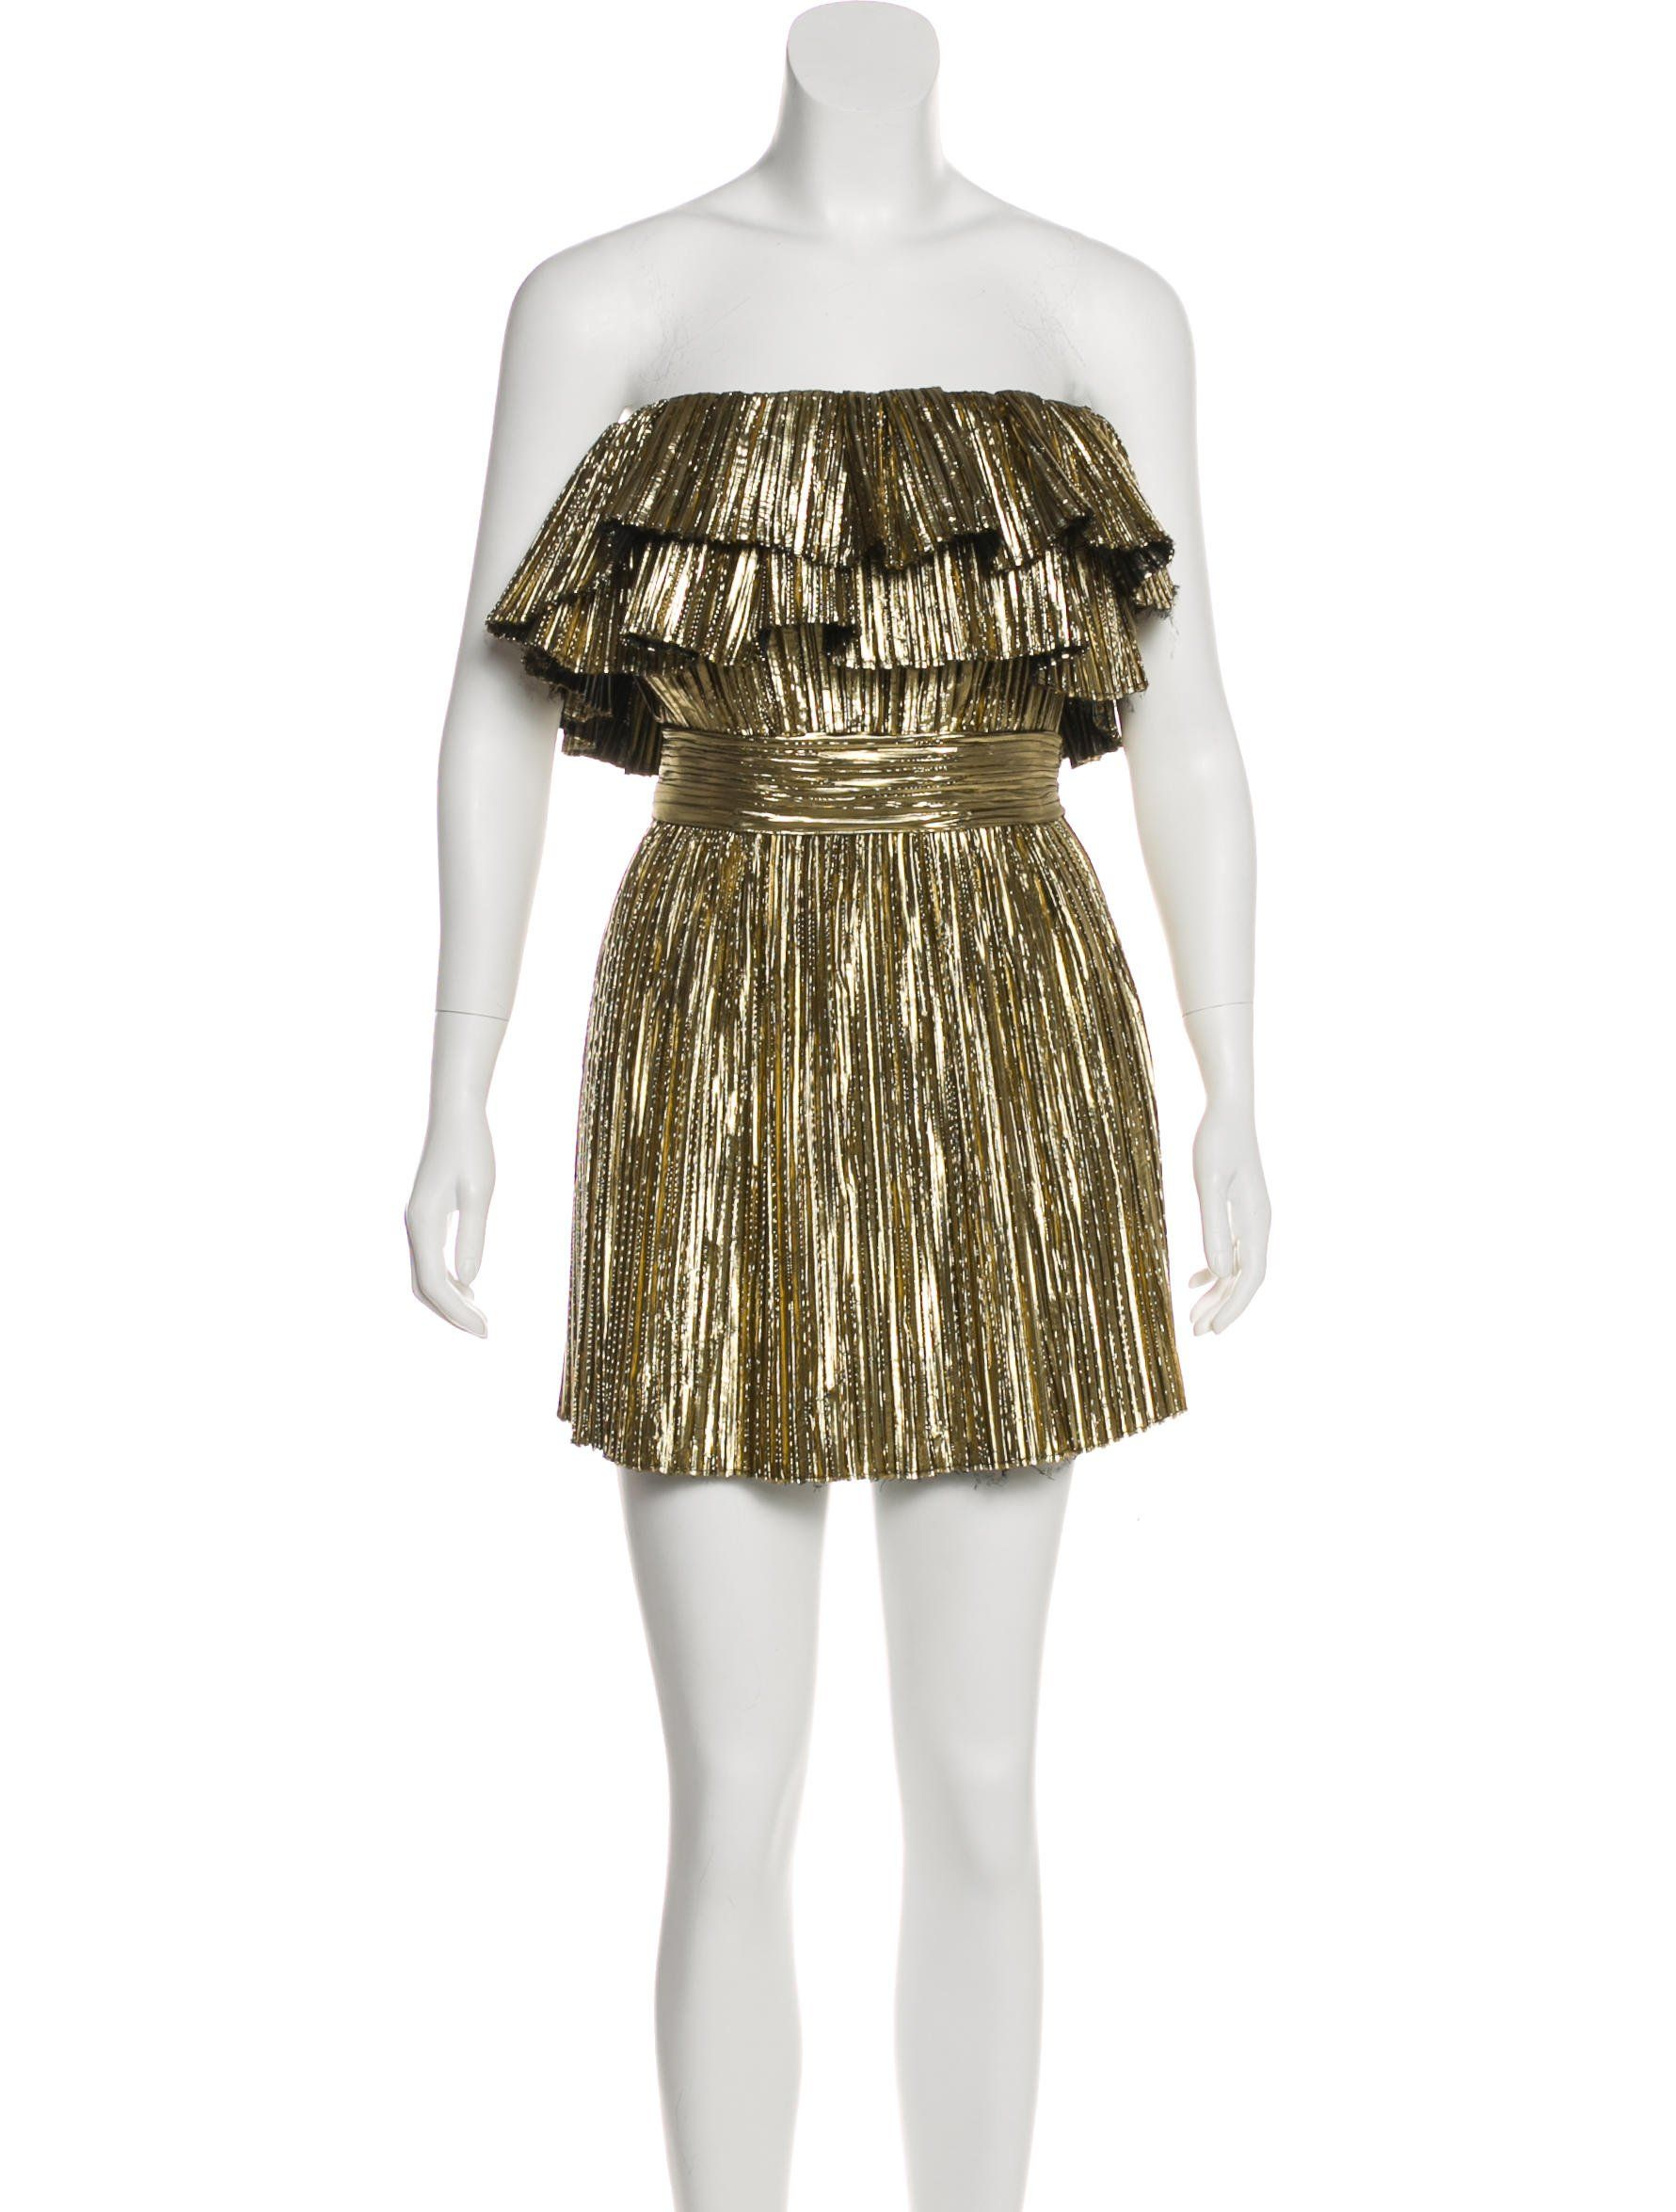 9daefd4c4a Gold Saint Laurent pleated metallic lamé strapless mini dress with tiered ruffle  trim at neckline